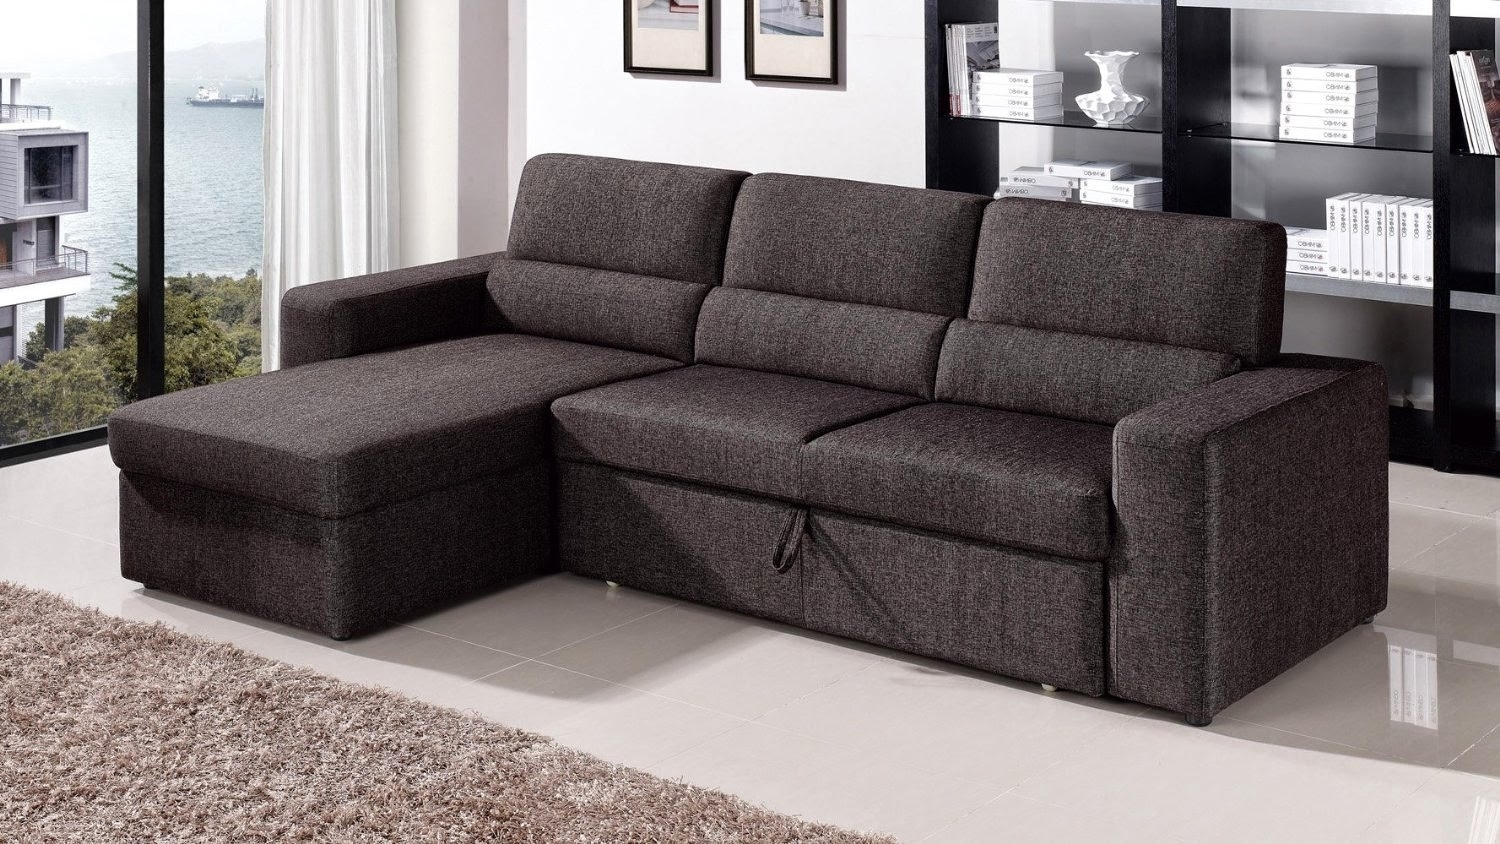 Small Sectional Sofa With Pull Out Bed • Sectional Sofa with regard to Pull Out Beds Sectional Sofas (Image 9 of 10)